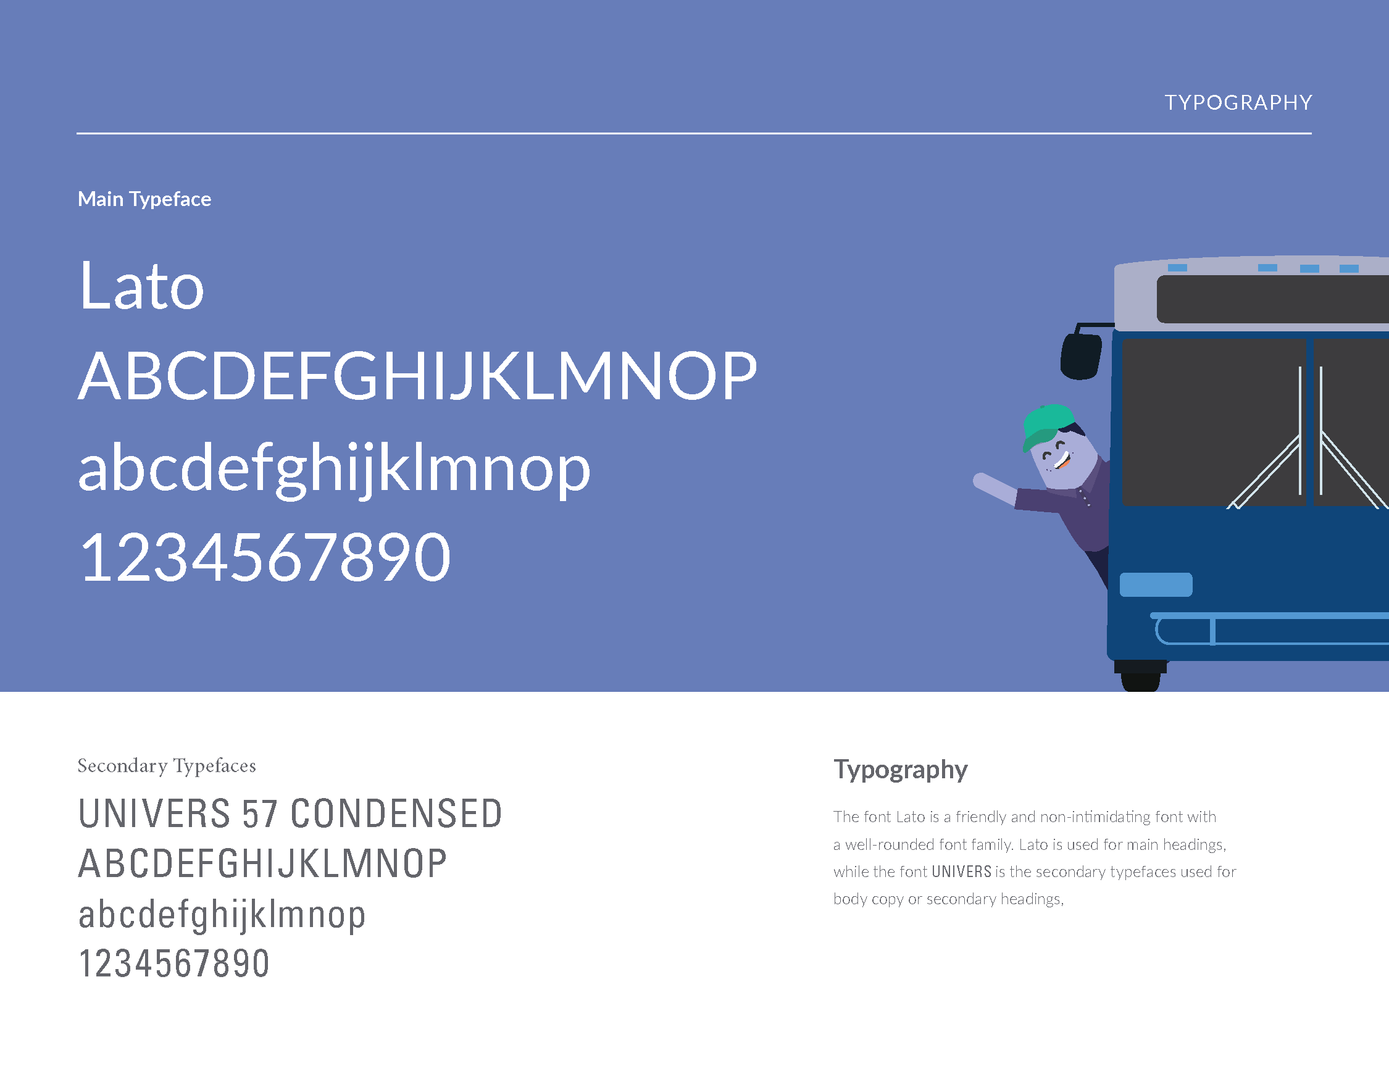 081919_WTA_Touchpass_Campaign Guide_d4_P